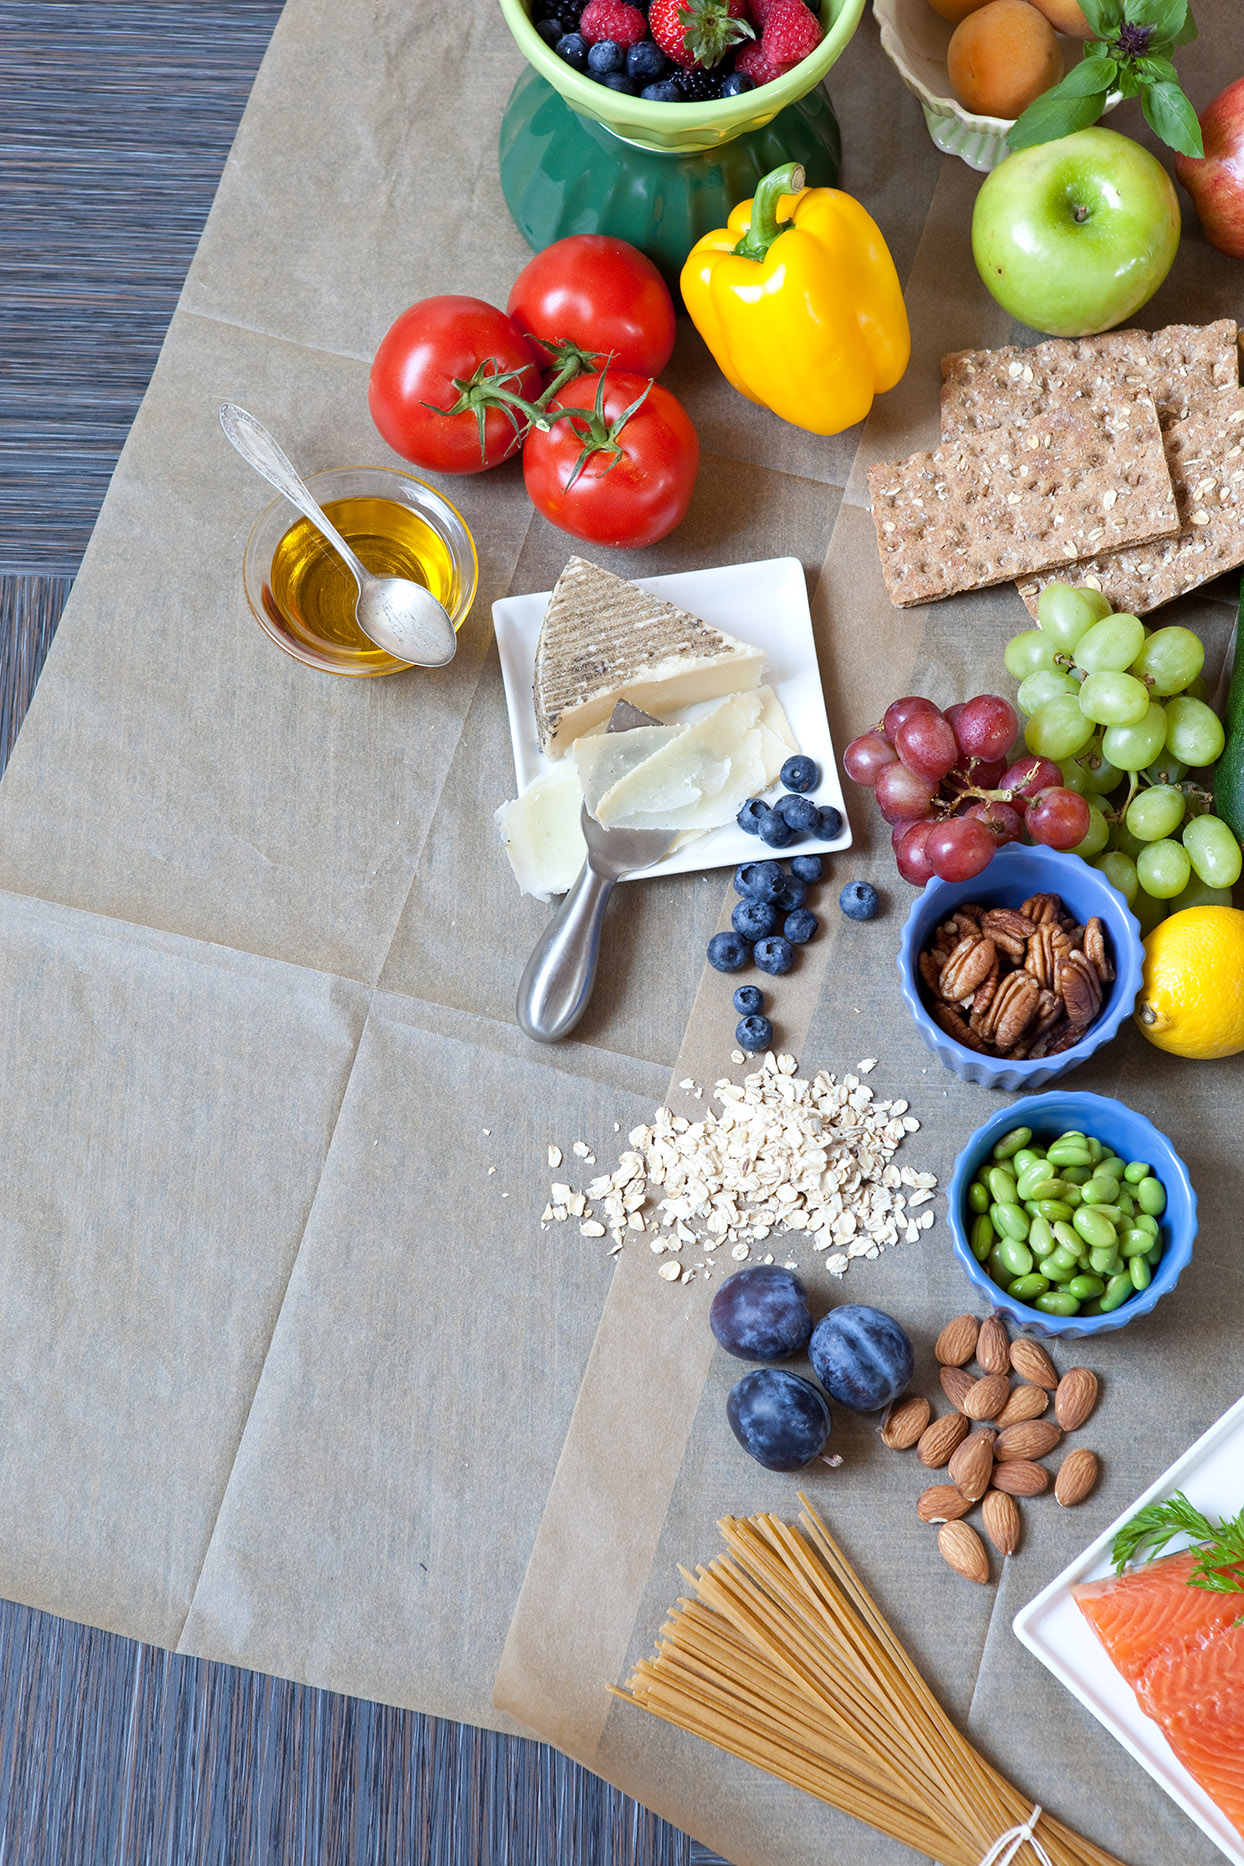 Scattering of healthy ingredients on brown parchment. Ingredients include berries, tomatoes on the vine, bell pepper, apple, wheat cracker, cheese, grapes, pecans, lemon, edamame, oats, plums, almonds, salmon, and whole grain pasta.